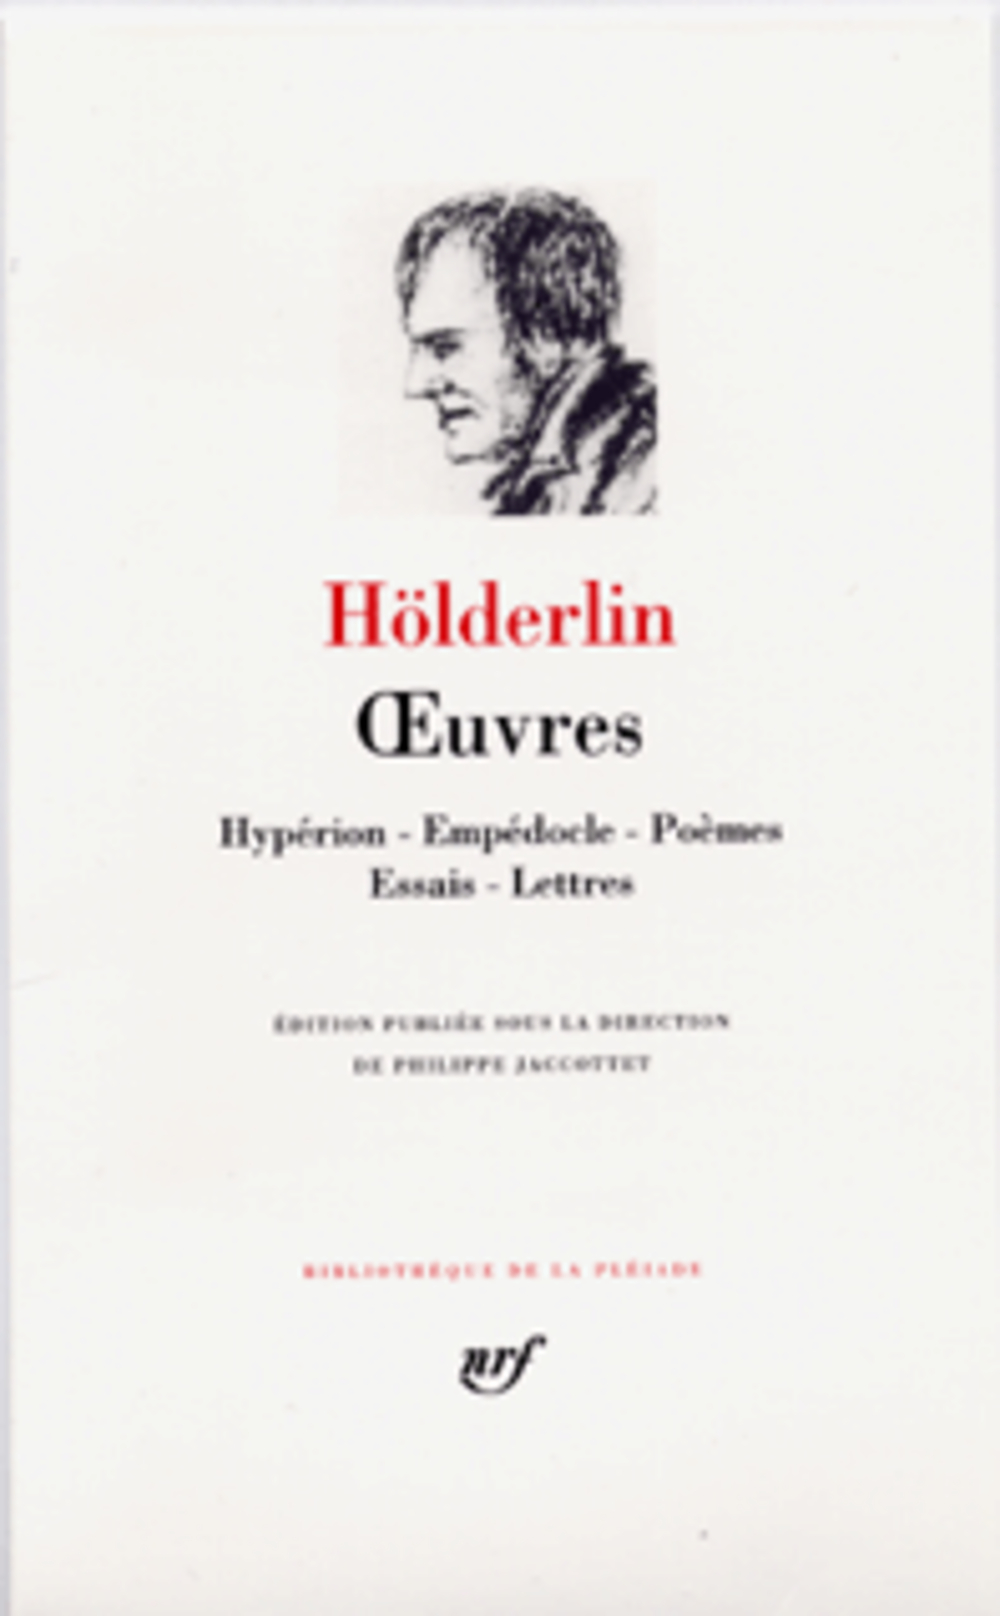 HOLDERLIN FRIED - OEUVRES